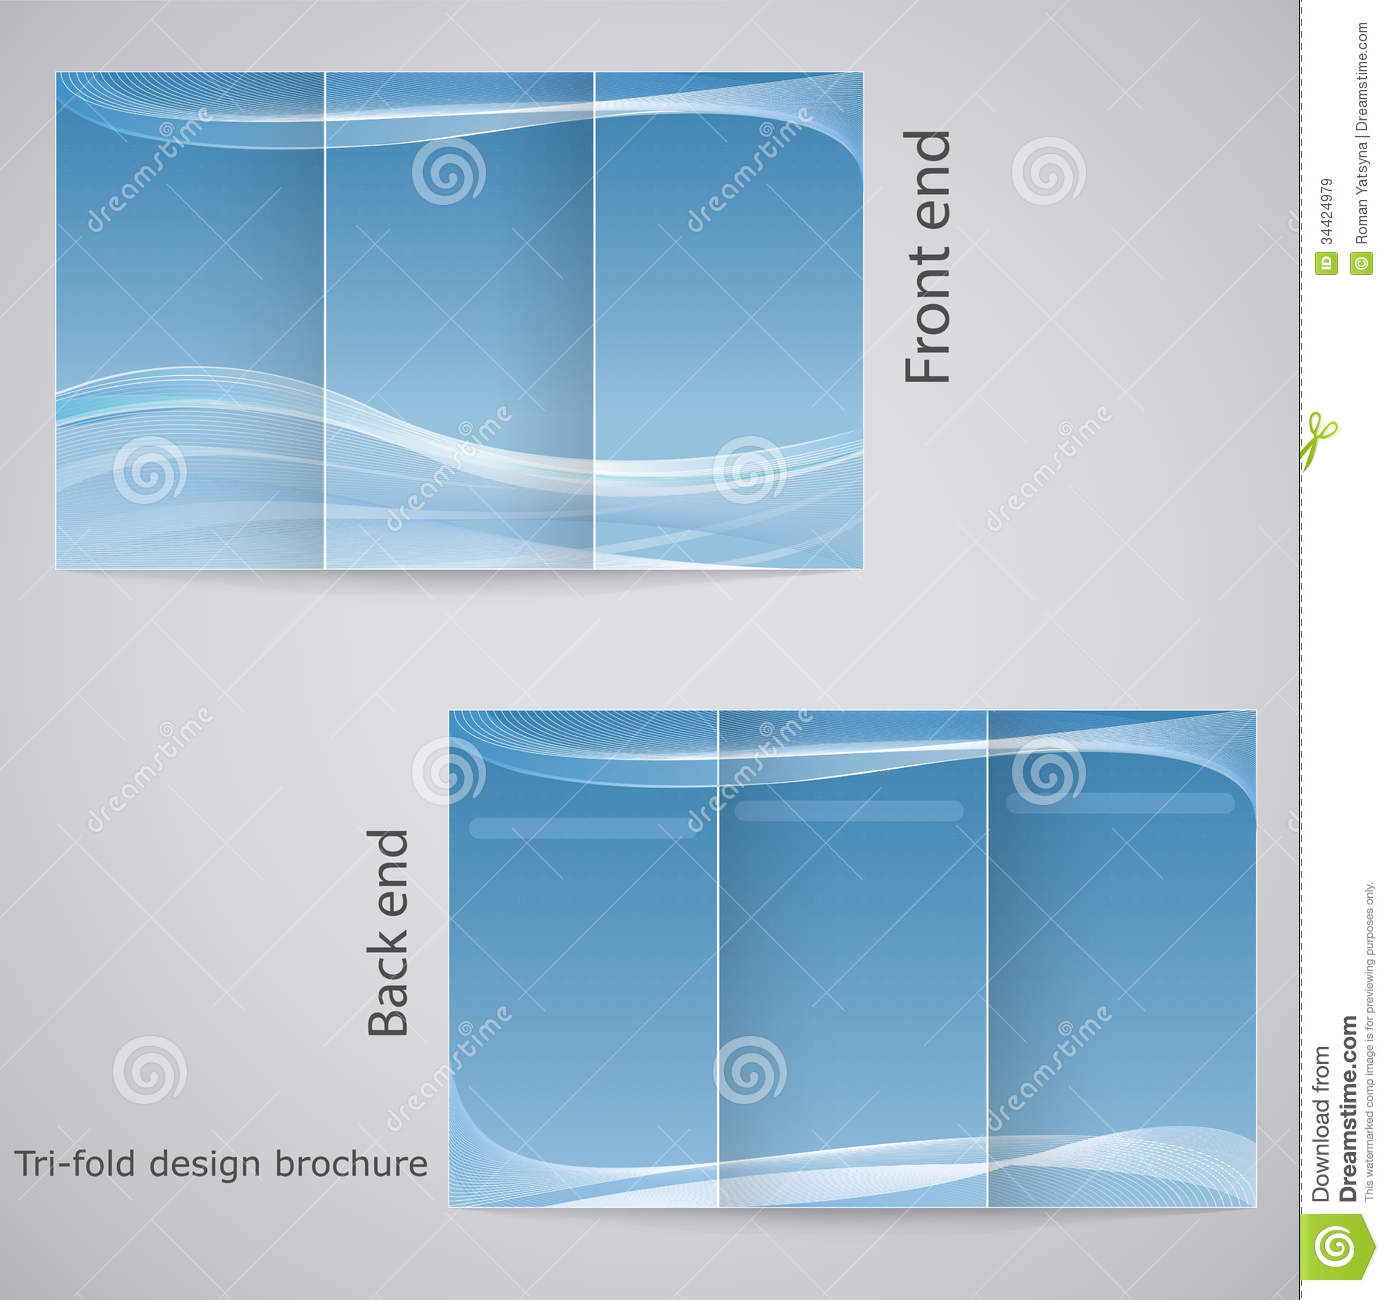 17 tri fold brochure design templates images tri fold for Tri folded brochure templates